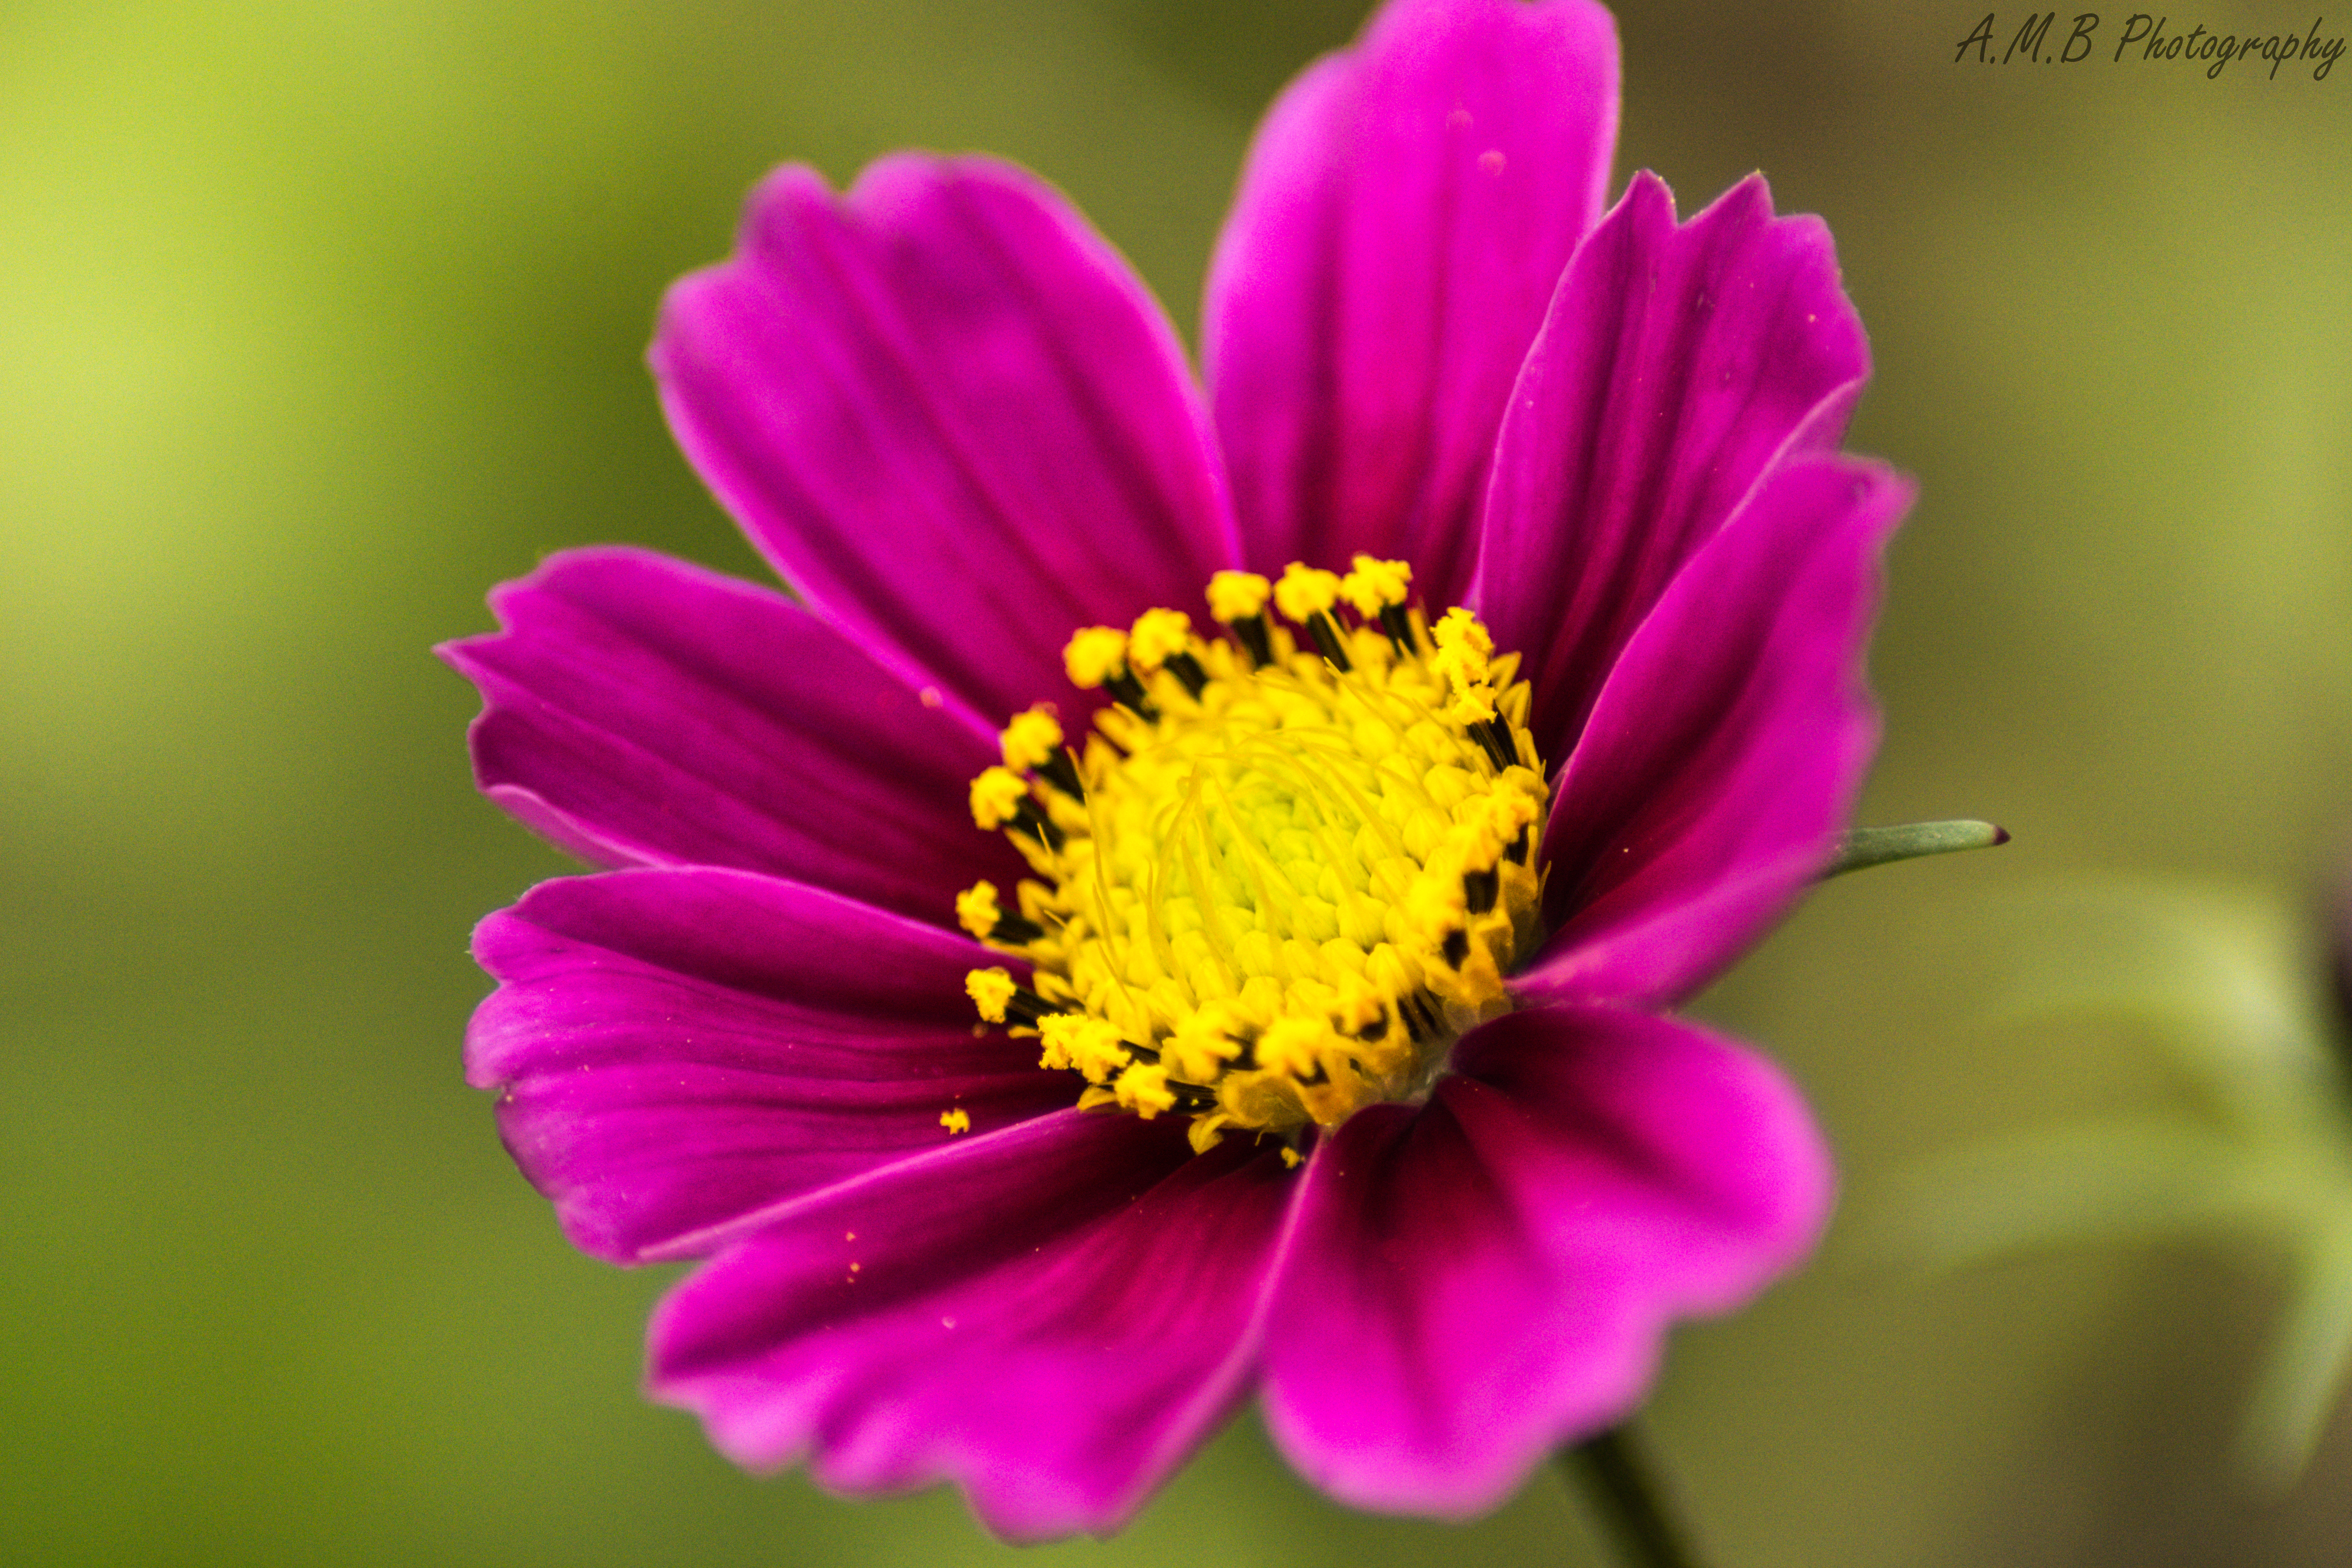 Fall Cosmos Blooms